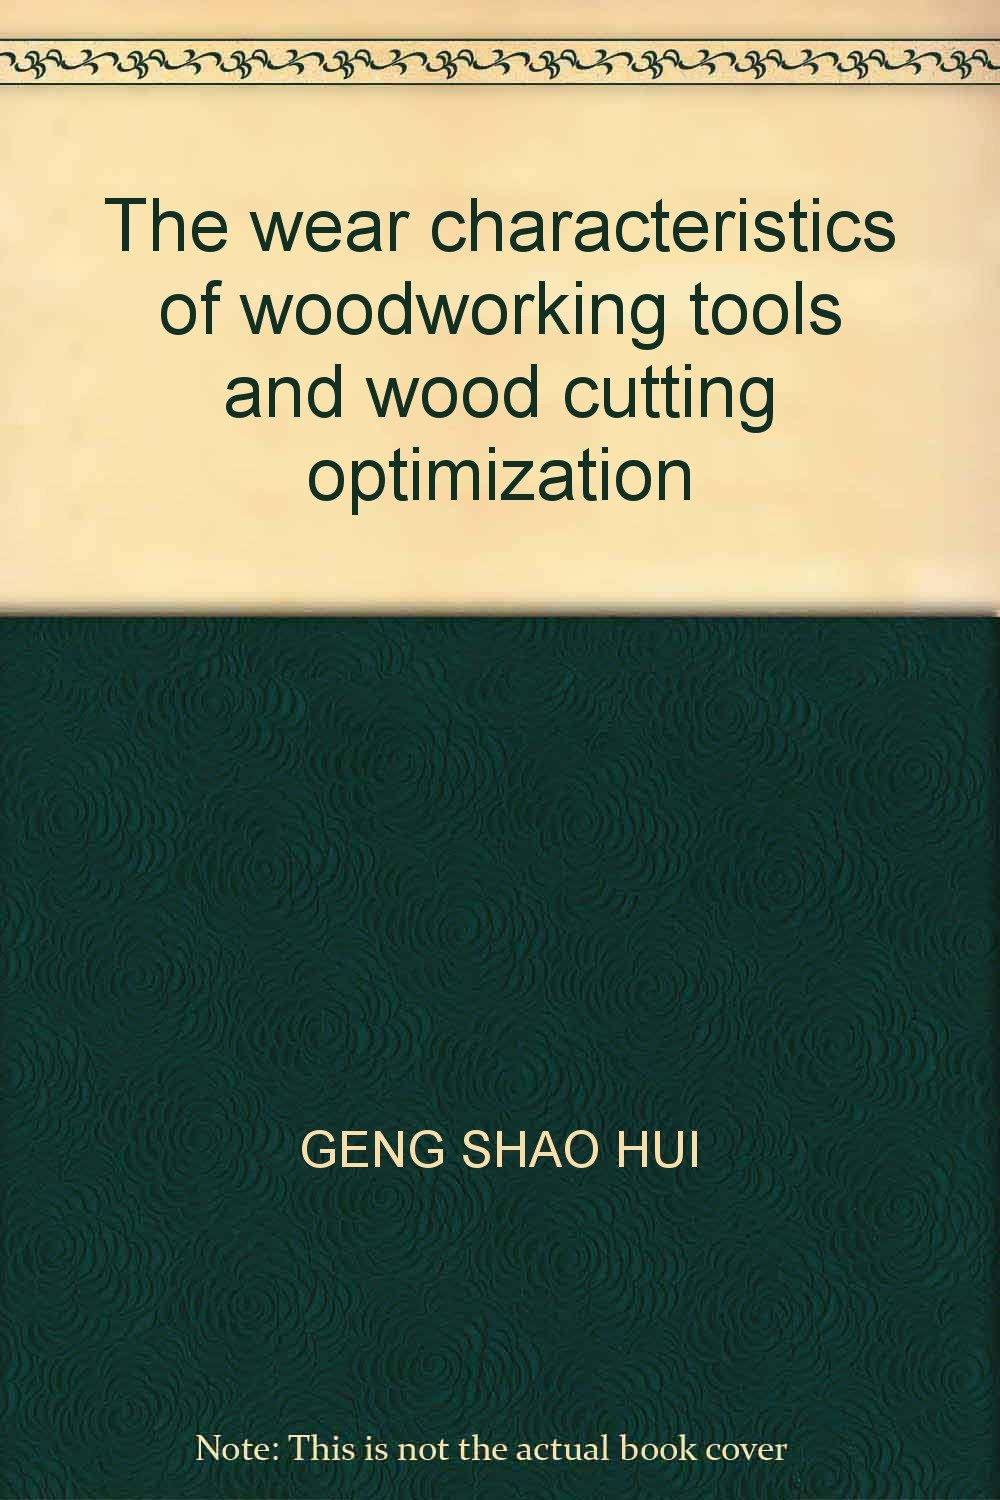 The wear characteristics of woodworking tools and wood cutting optimization